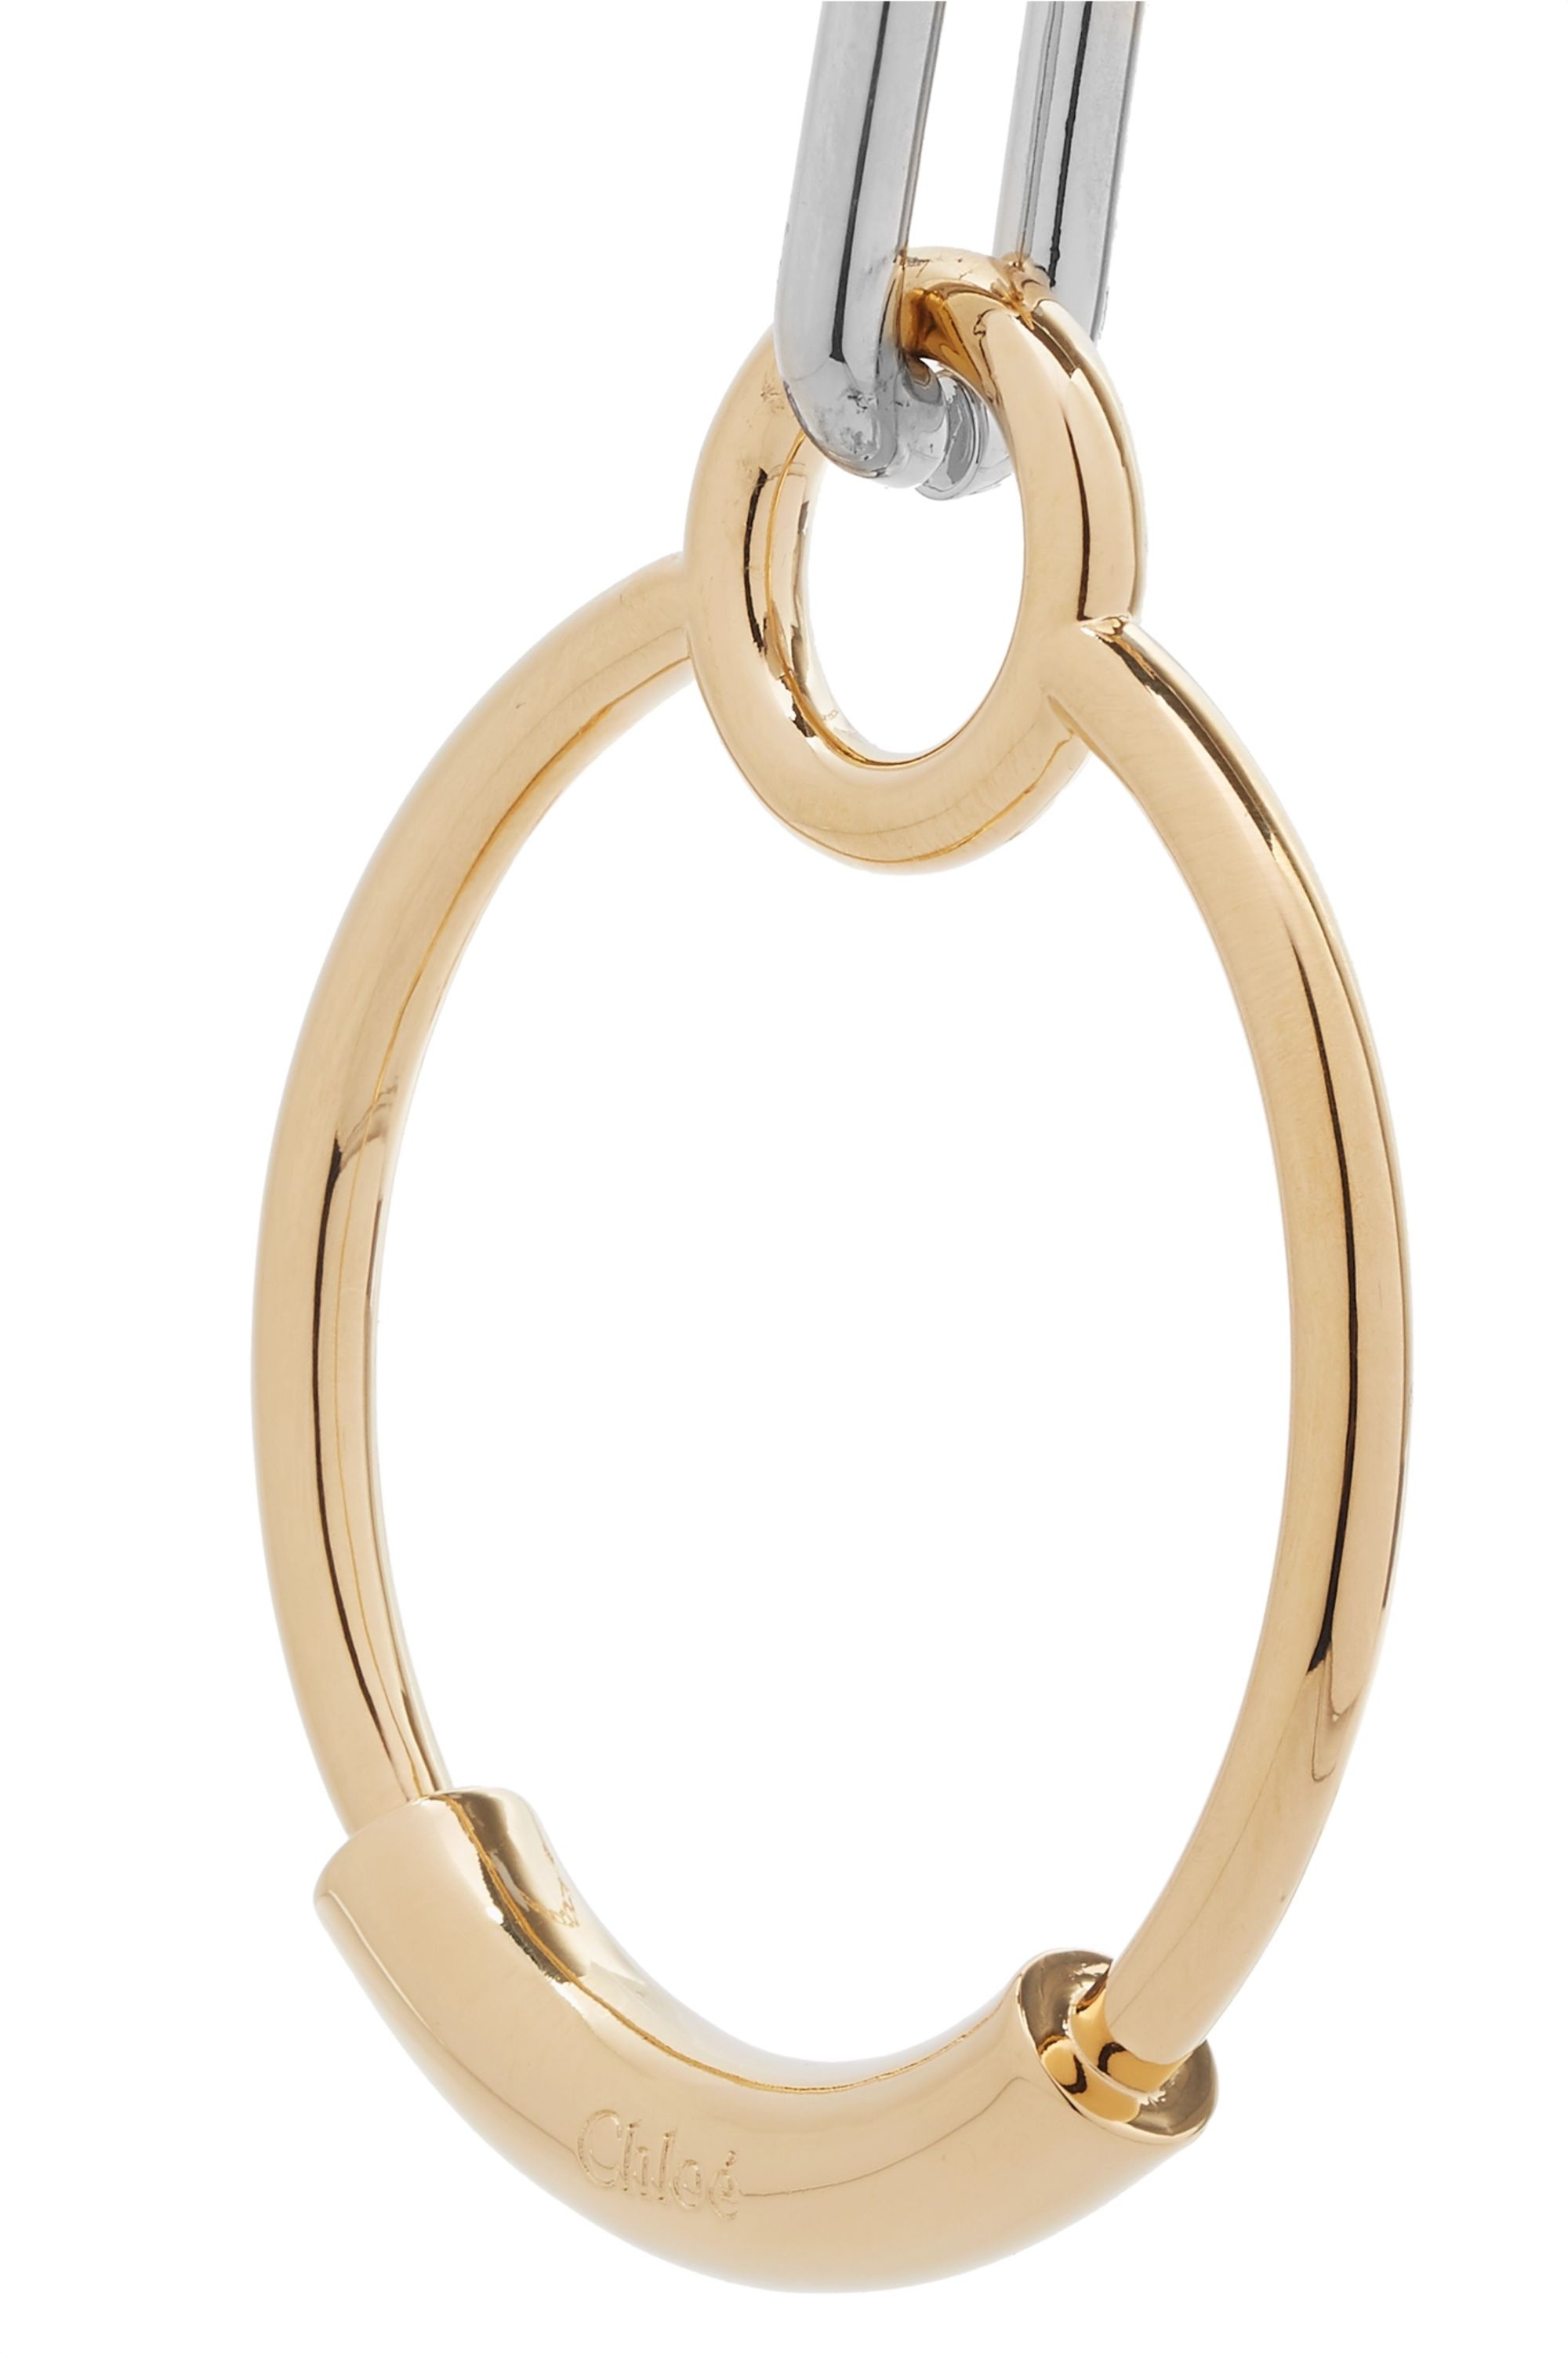 Chloé Reese gold-tone necklace